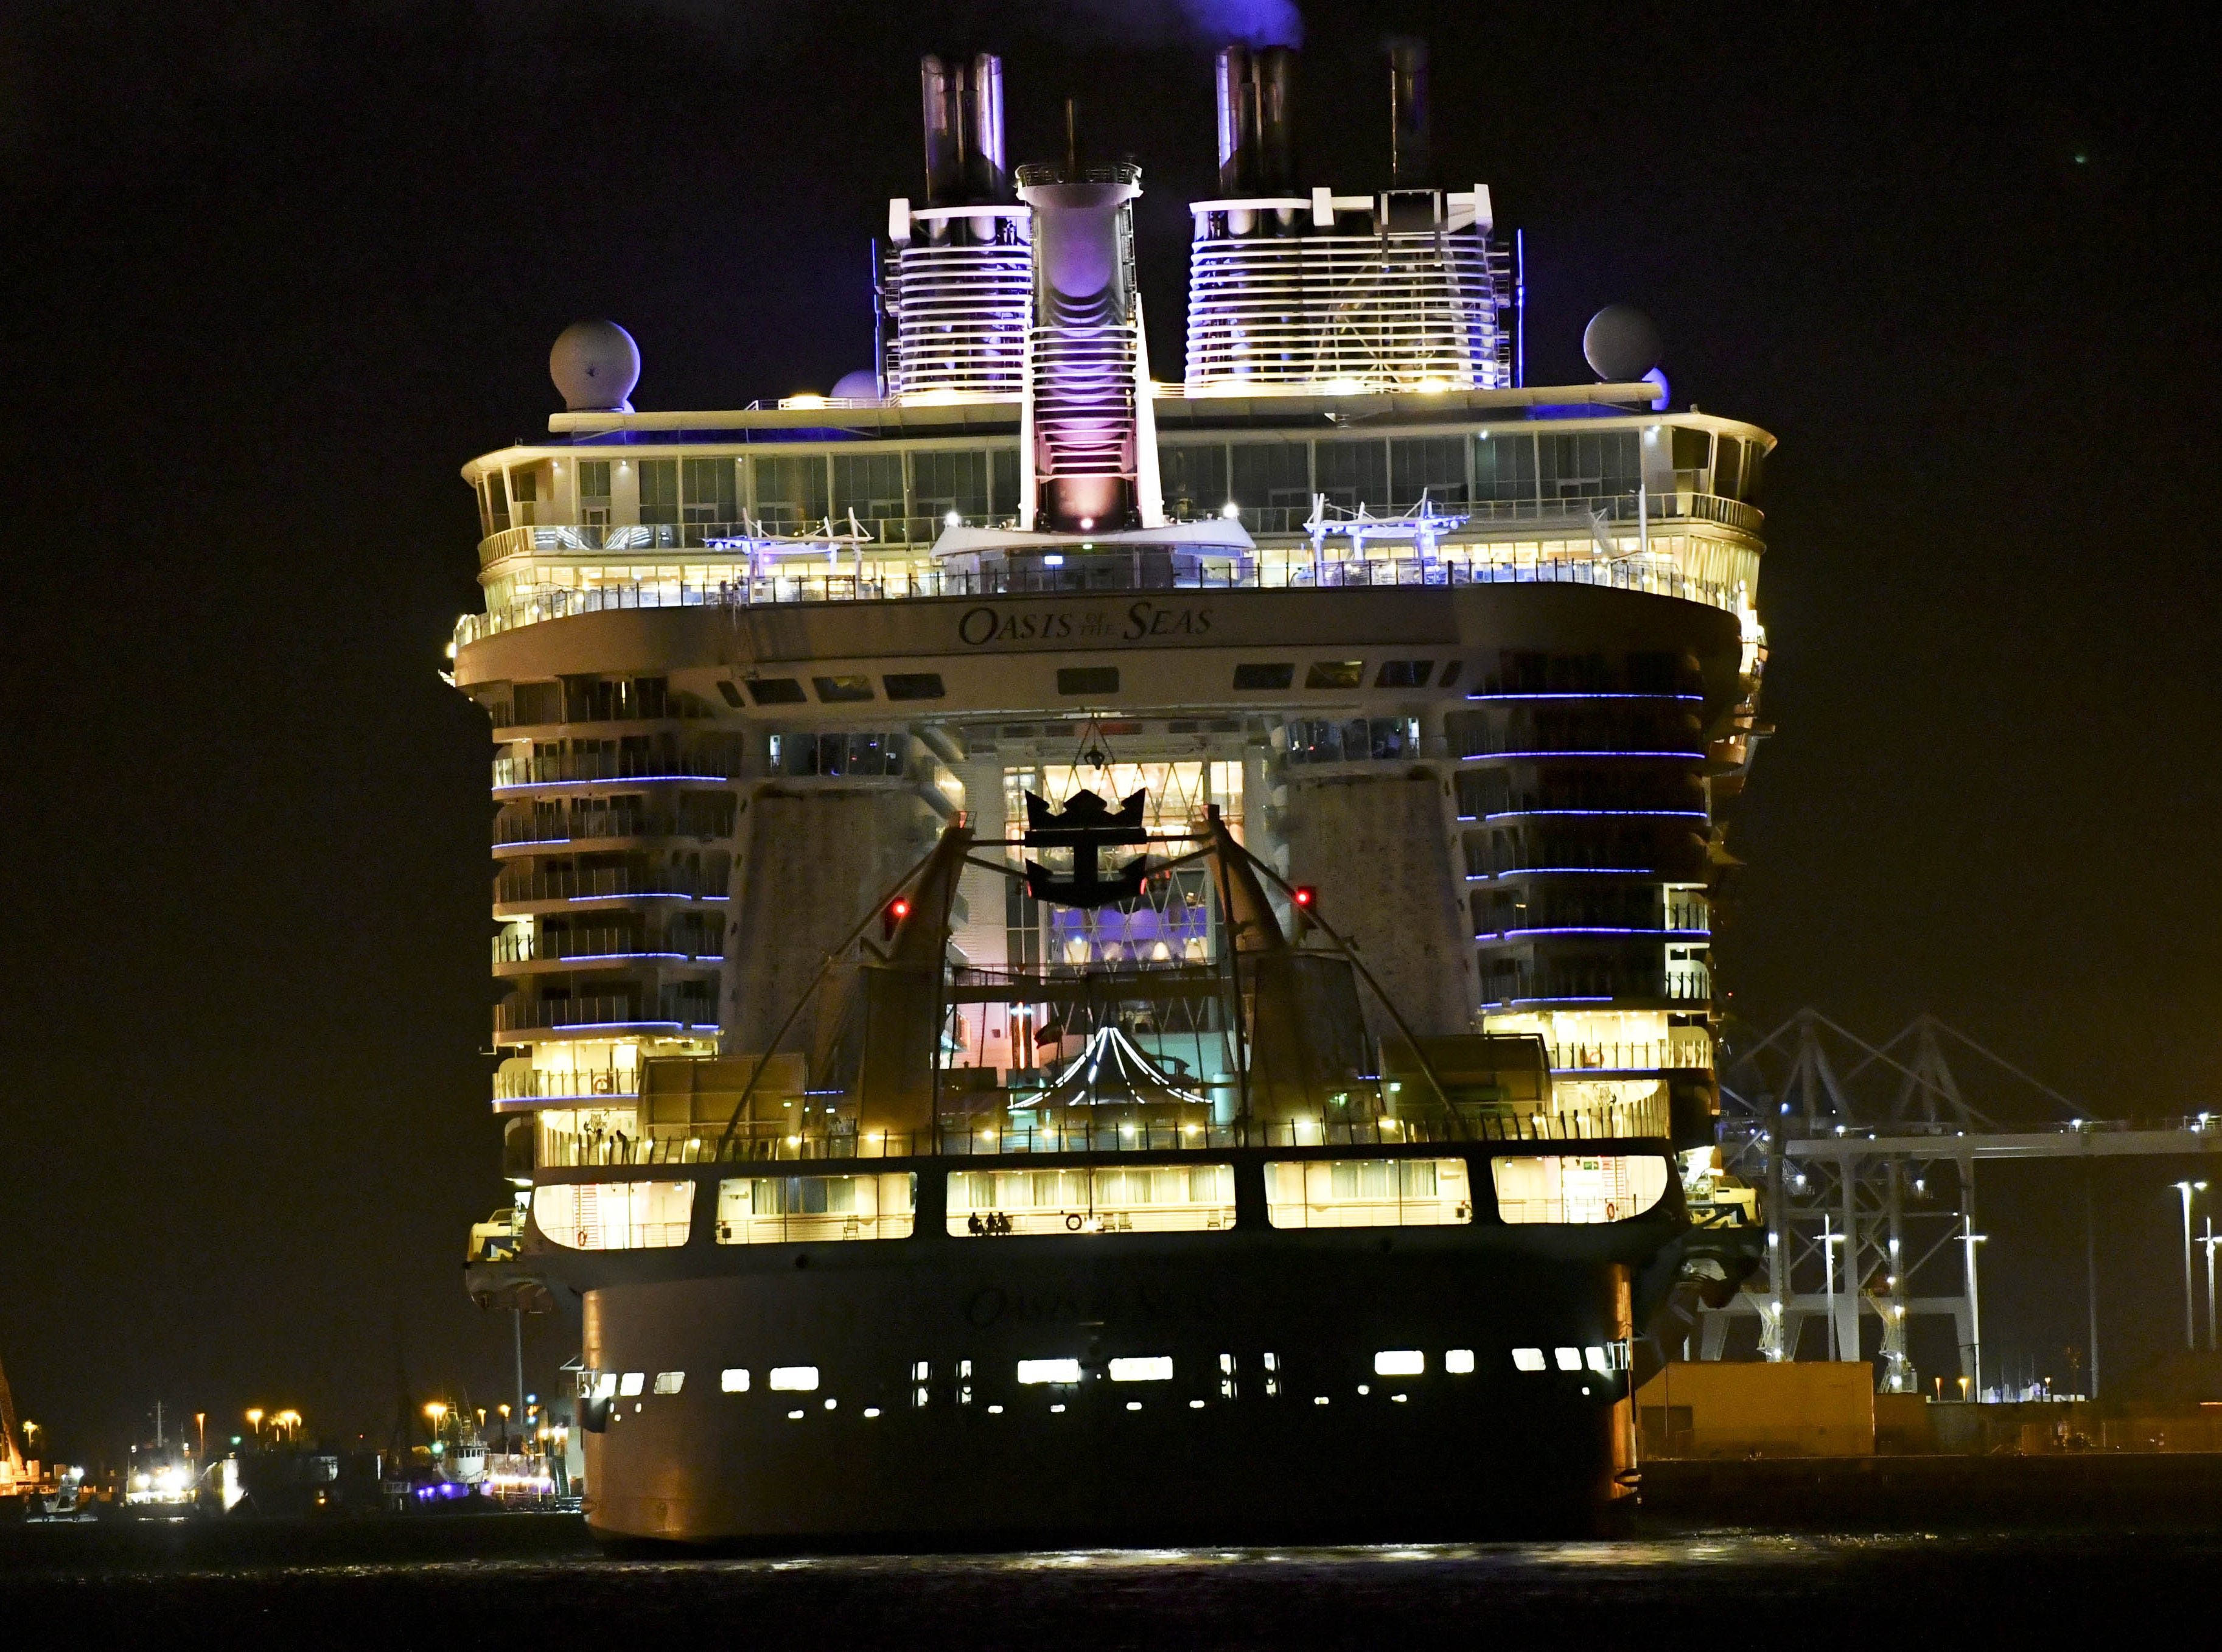 The Royal Caribbean Cruise Lines ship Oasis of the Seas returned to Port Canaveral on Jan. 12, 2019.  The ship returned to port a day early due to an outbreak of Norovirus.